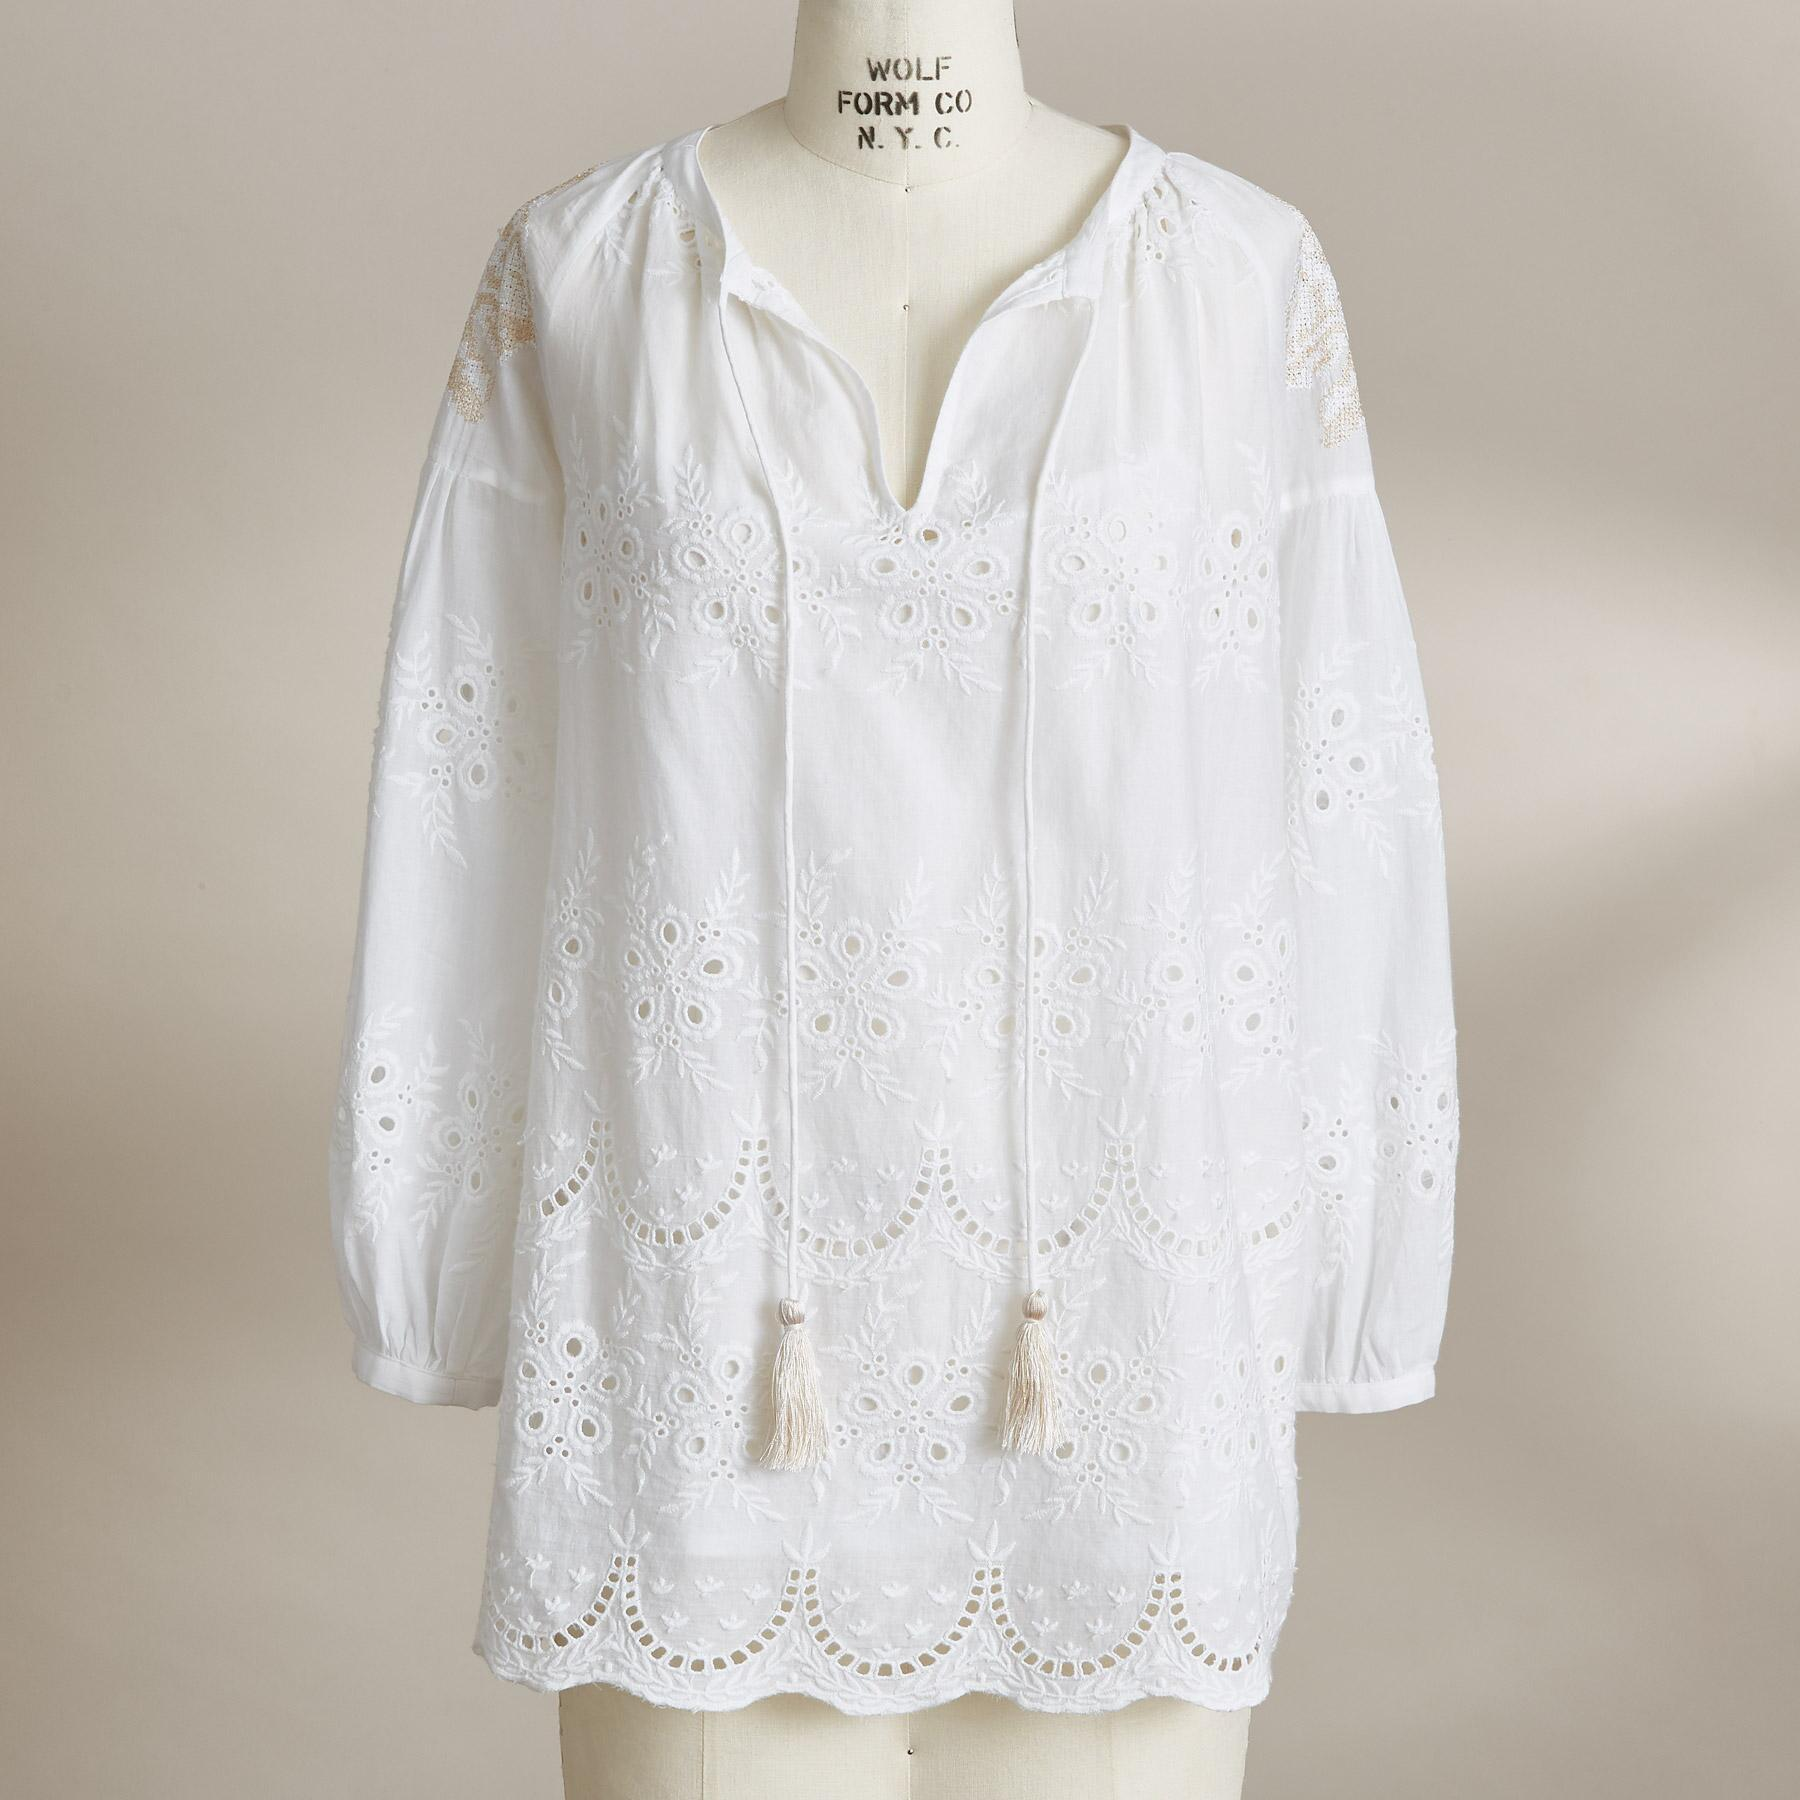 EYELET TO PERFECTION TOP: View 2